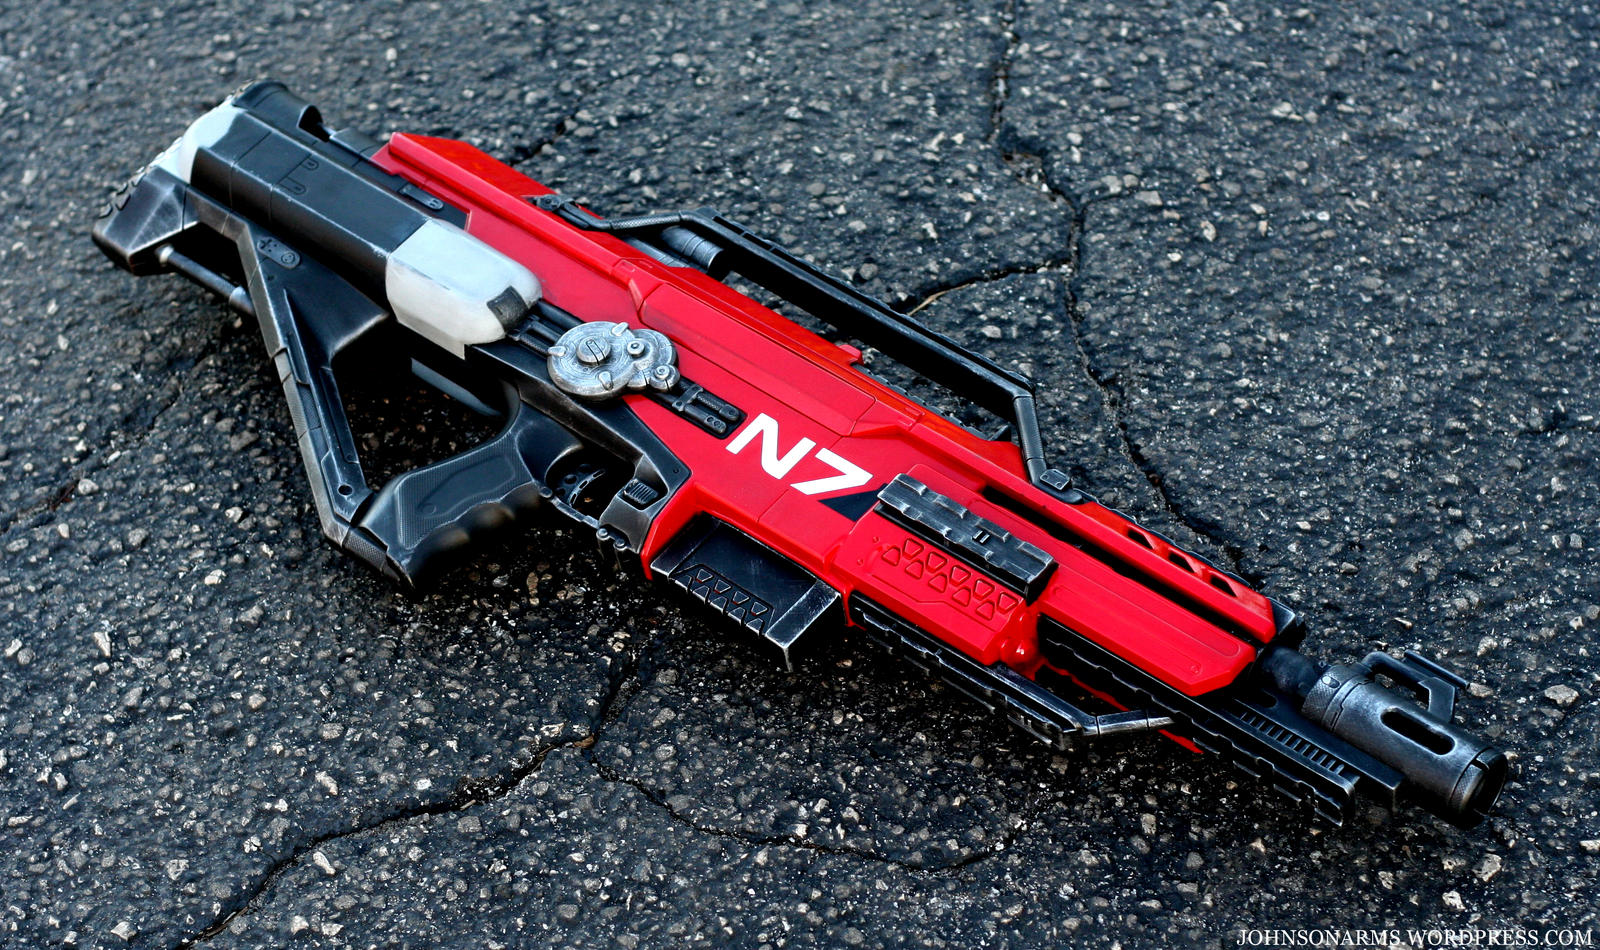 G33kwatch.com N7 Stampede by JohnsonArms